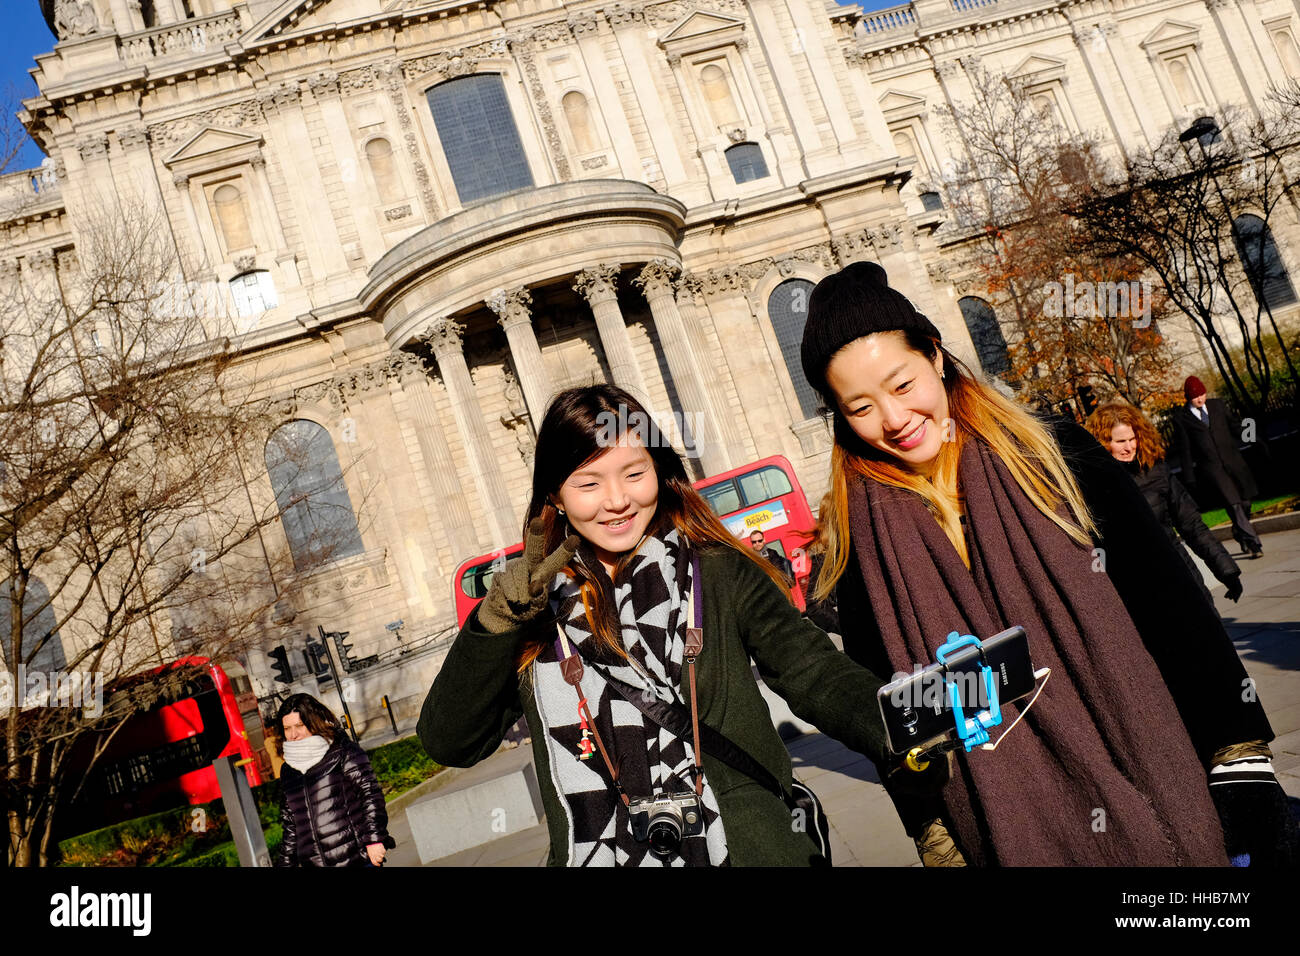 female chinese tourists taking selfie photograph Stock Photo